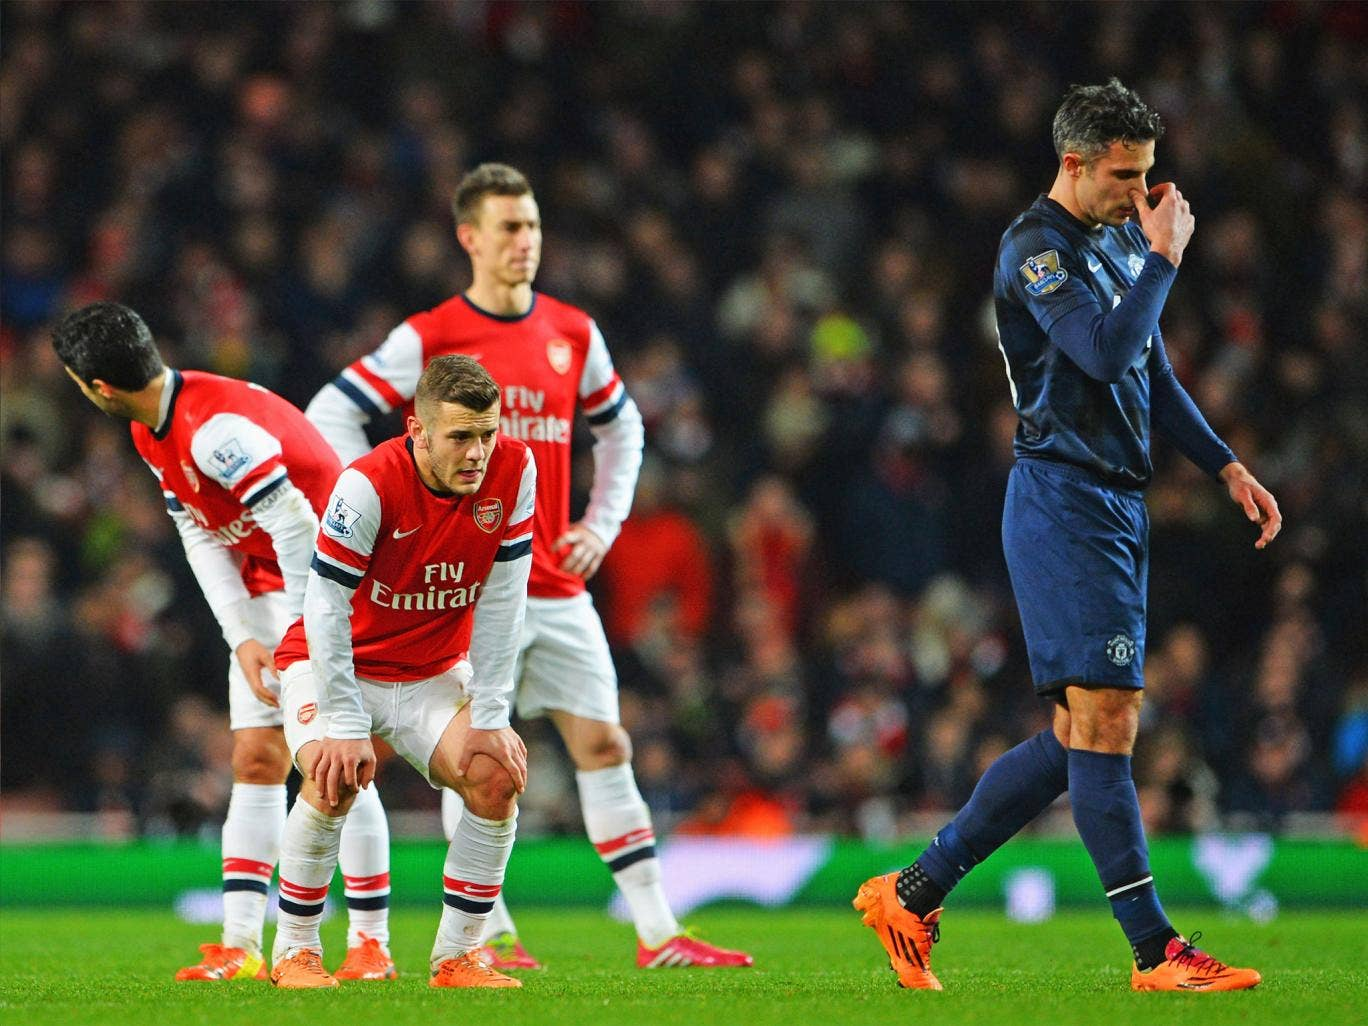 Arsenal players, current and former, endured a frustrating evening at the Emirates